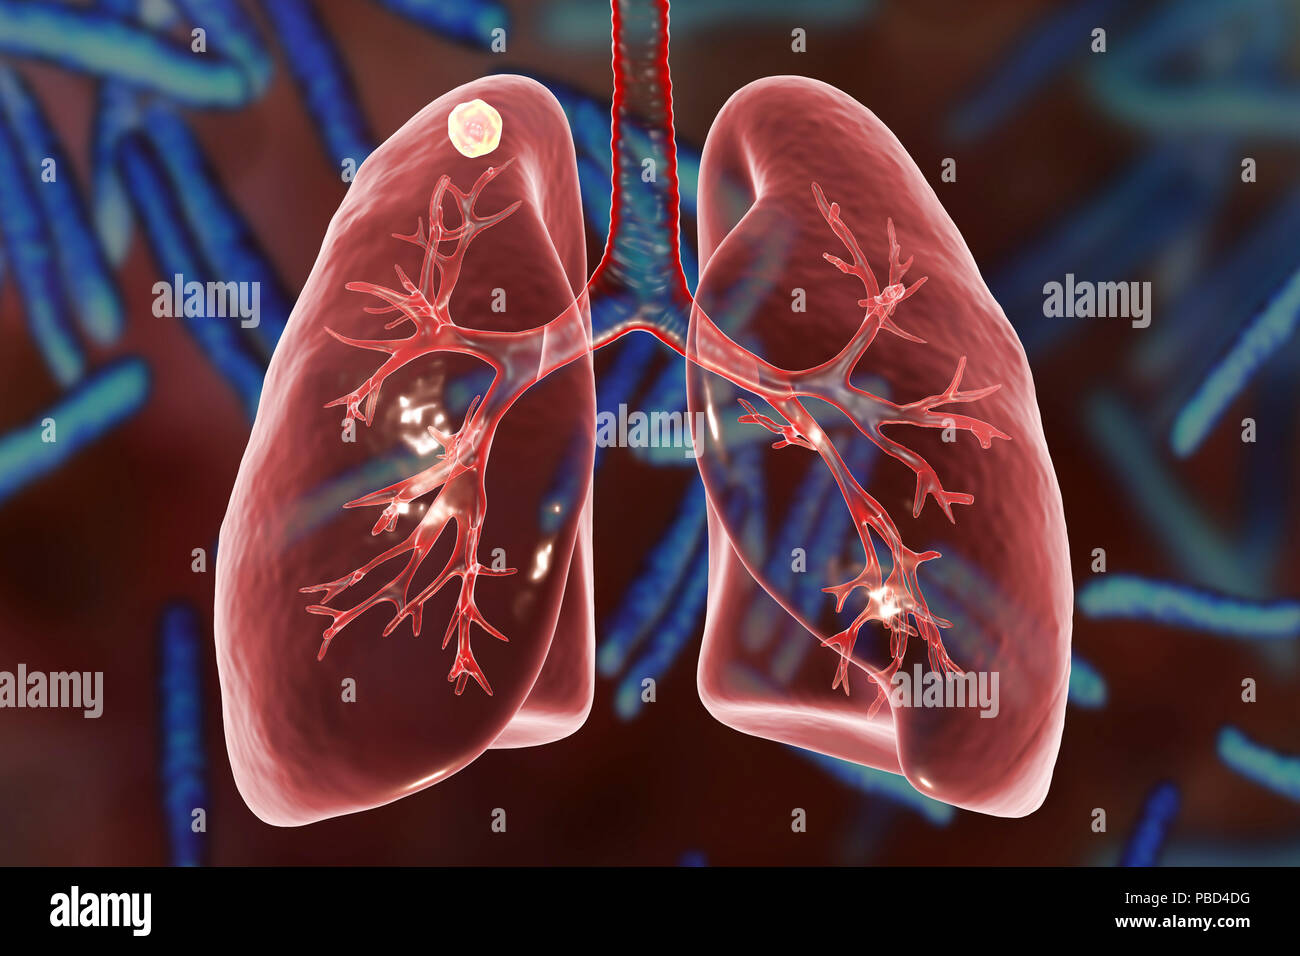 Secondary tuberculosis infection. Computer illustration showing ...